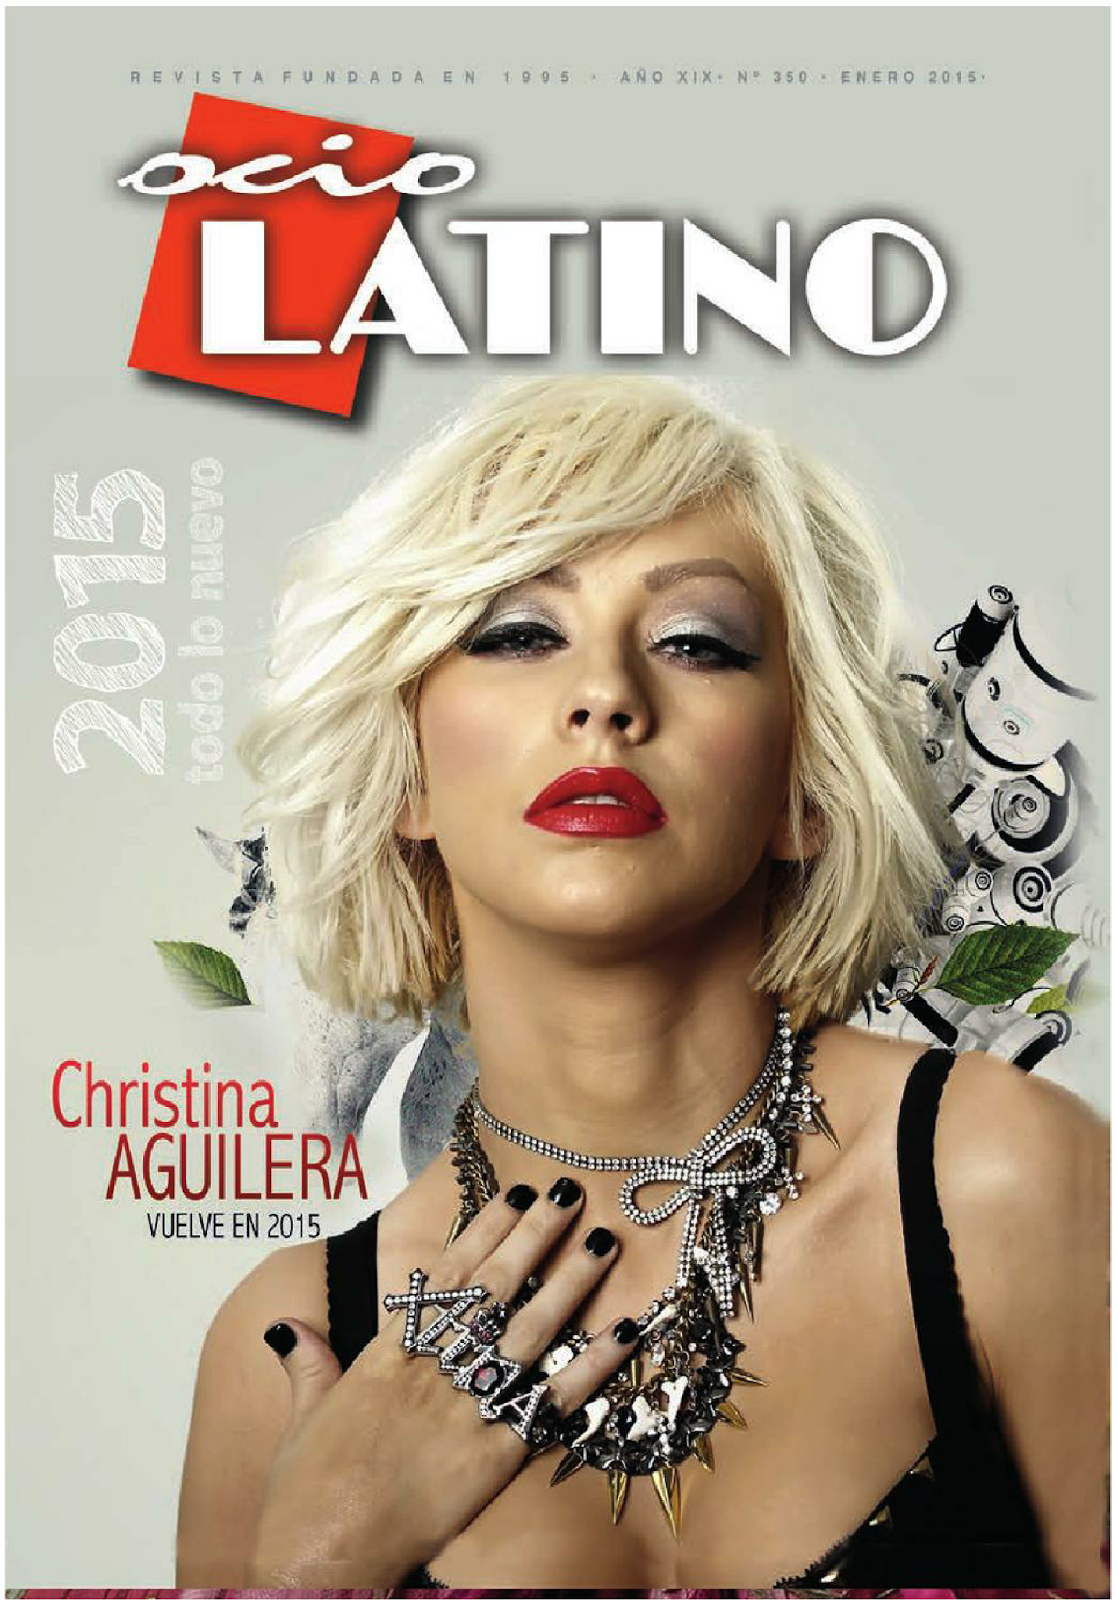 Christina Aguilera - Leisure Latino, Spain, January 2015